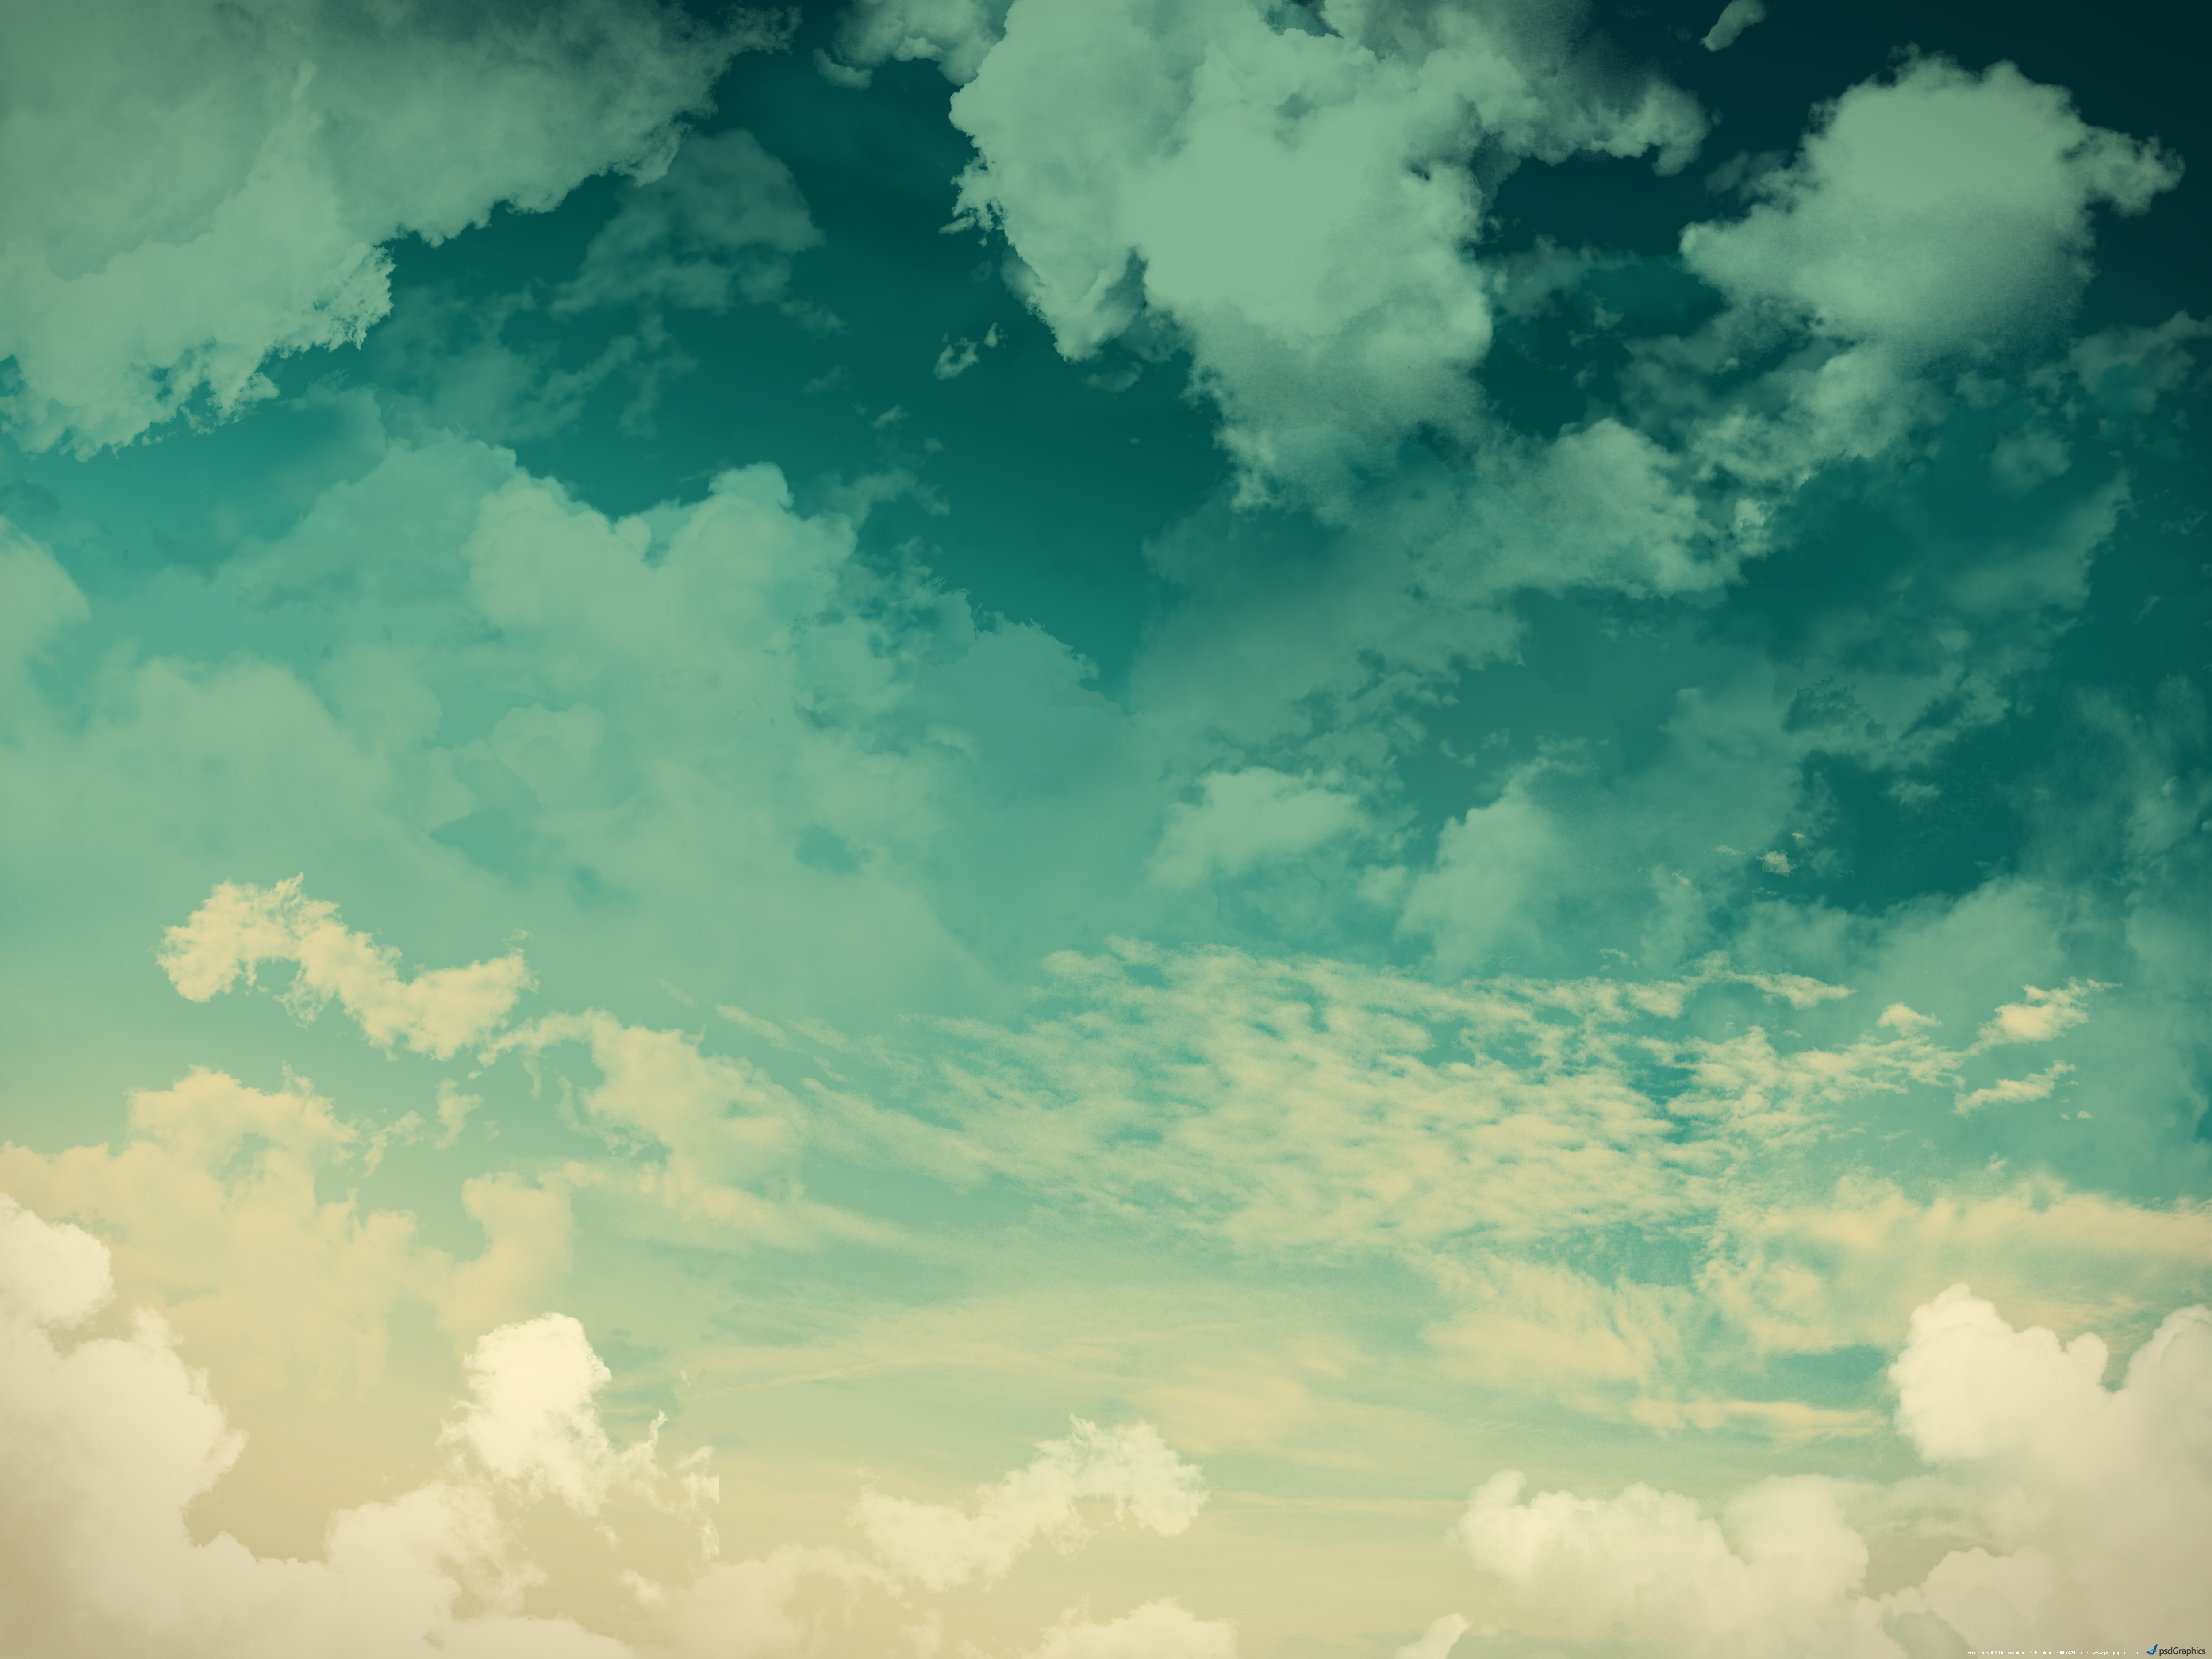 Grunge sky background green clouds PSDGraphics 5000x3750